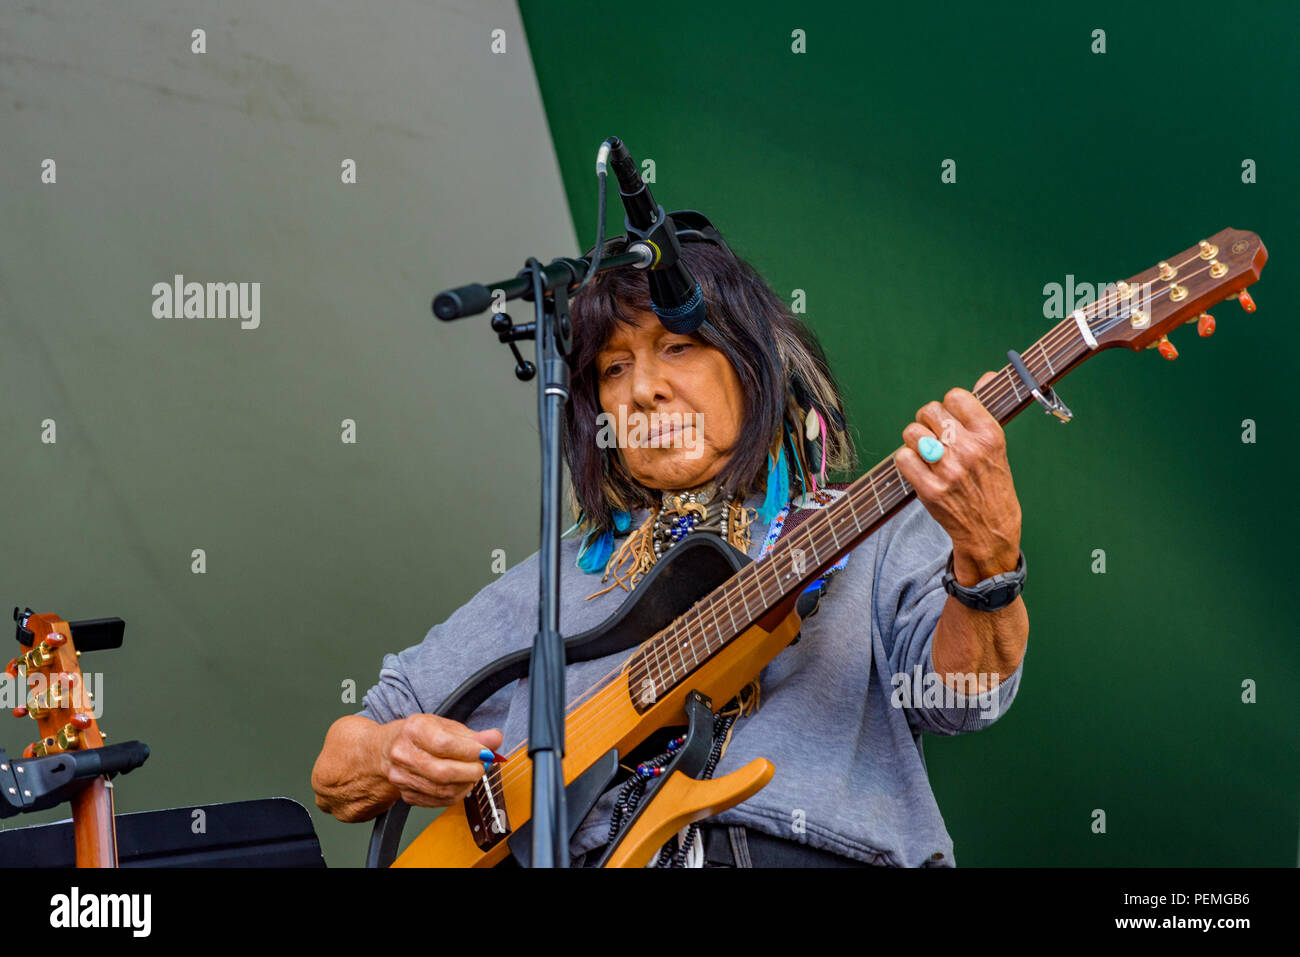 Buffy Sainte-Marie performs at Canmore Folk Music Festival, Canmore, Alberta, Canada. Stock Photo